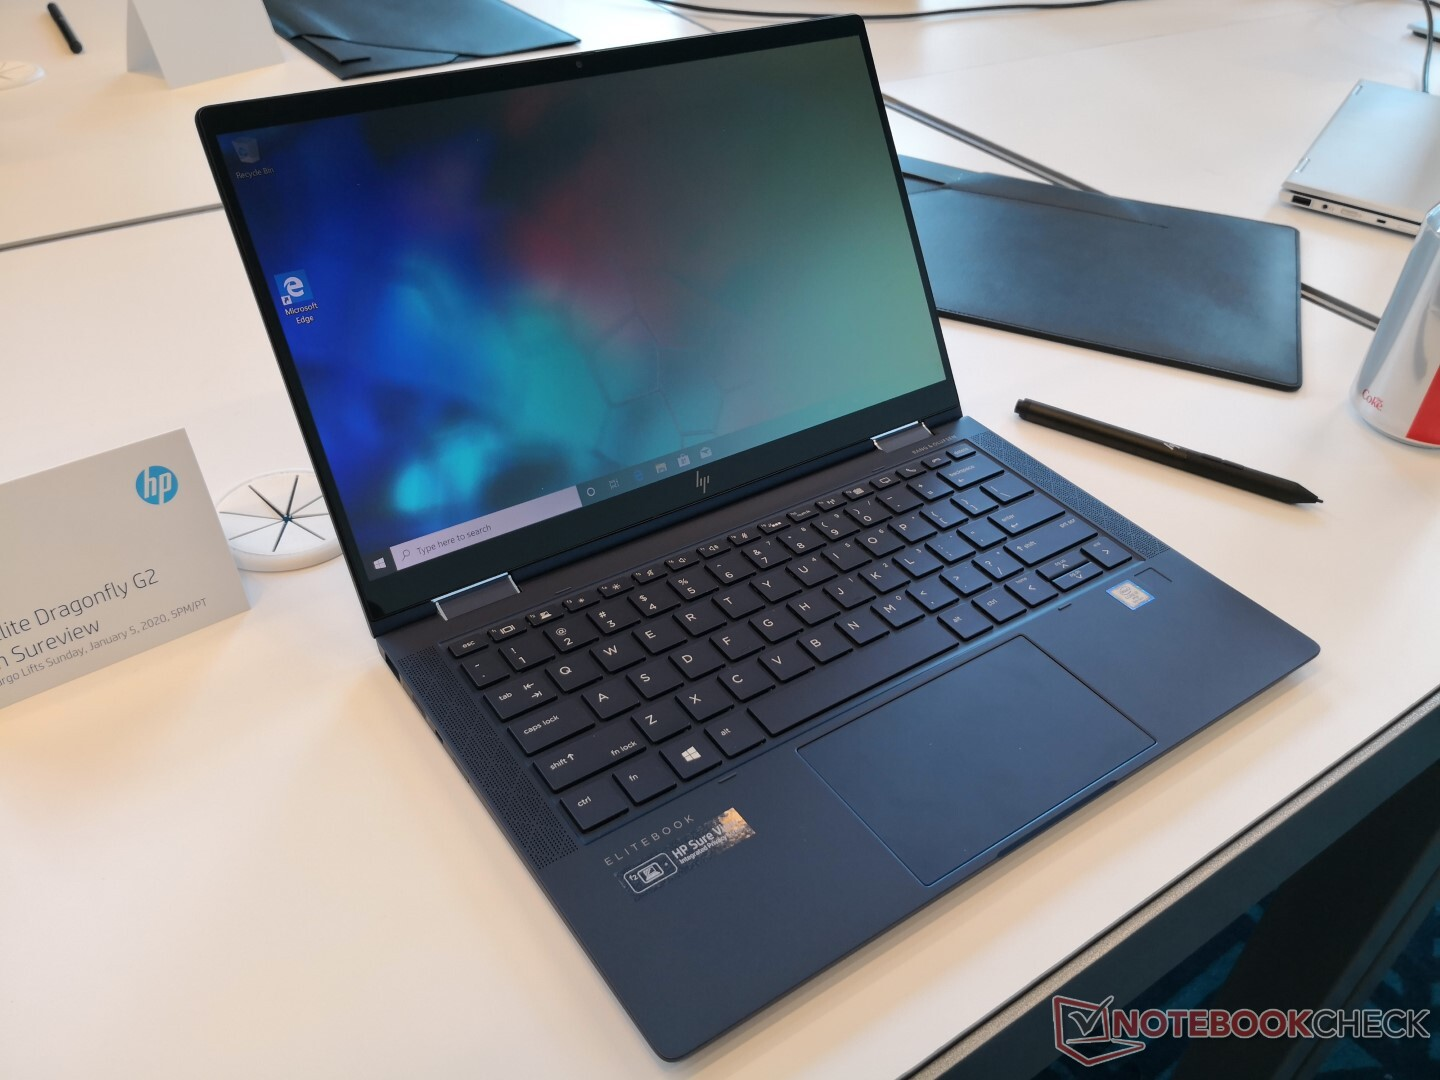 HP Presents Updated Spectre X360 15 Laptop Featuring Built-In Tile Tracker